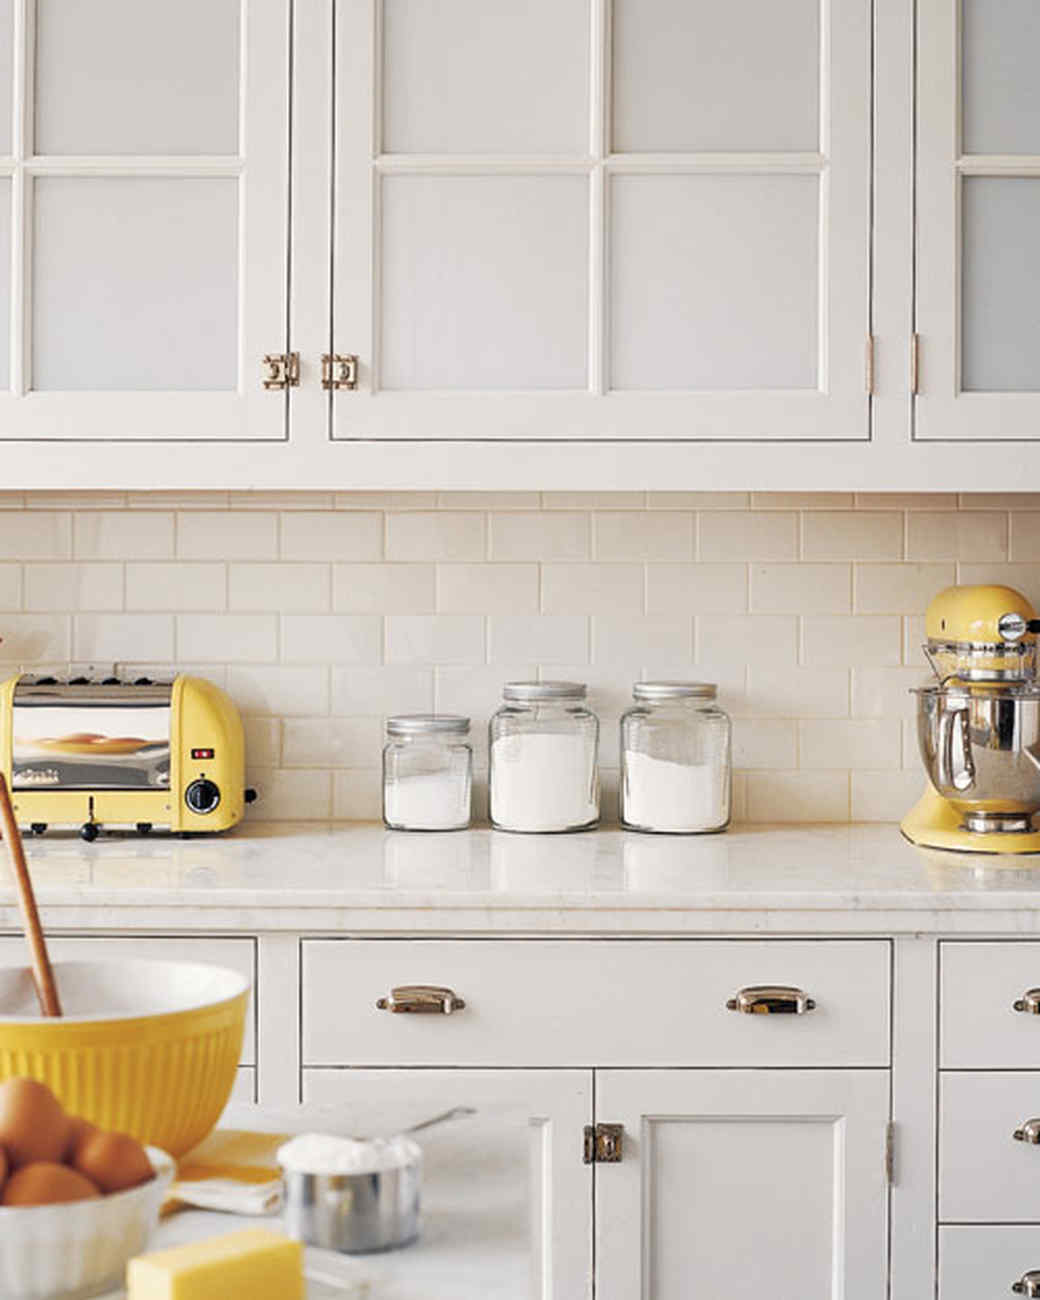 Organize Your Kitchen Cabinets In Nine Easy Steps